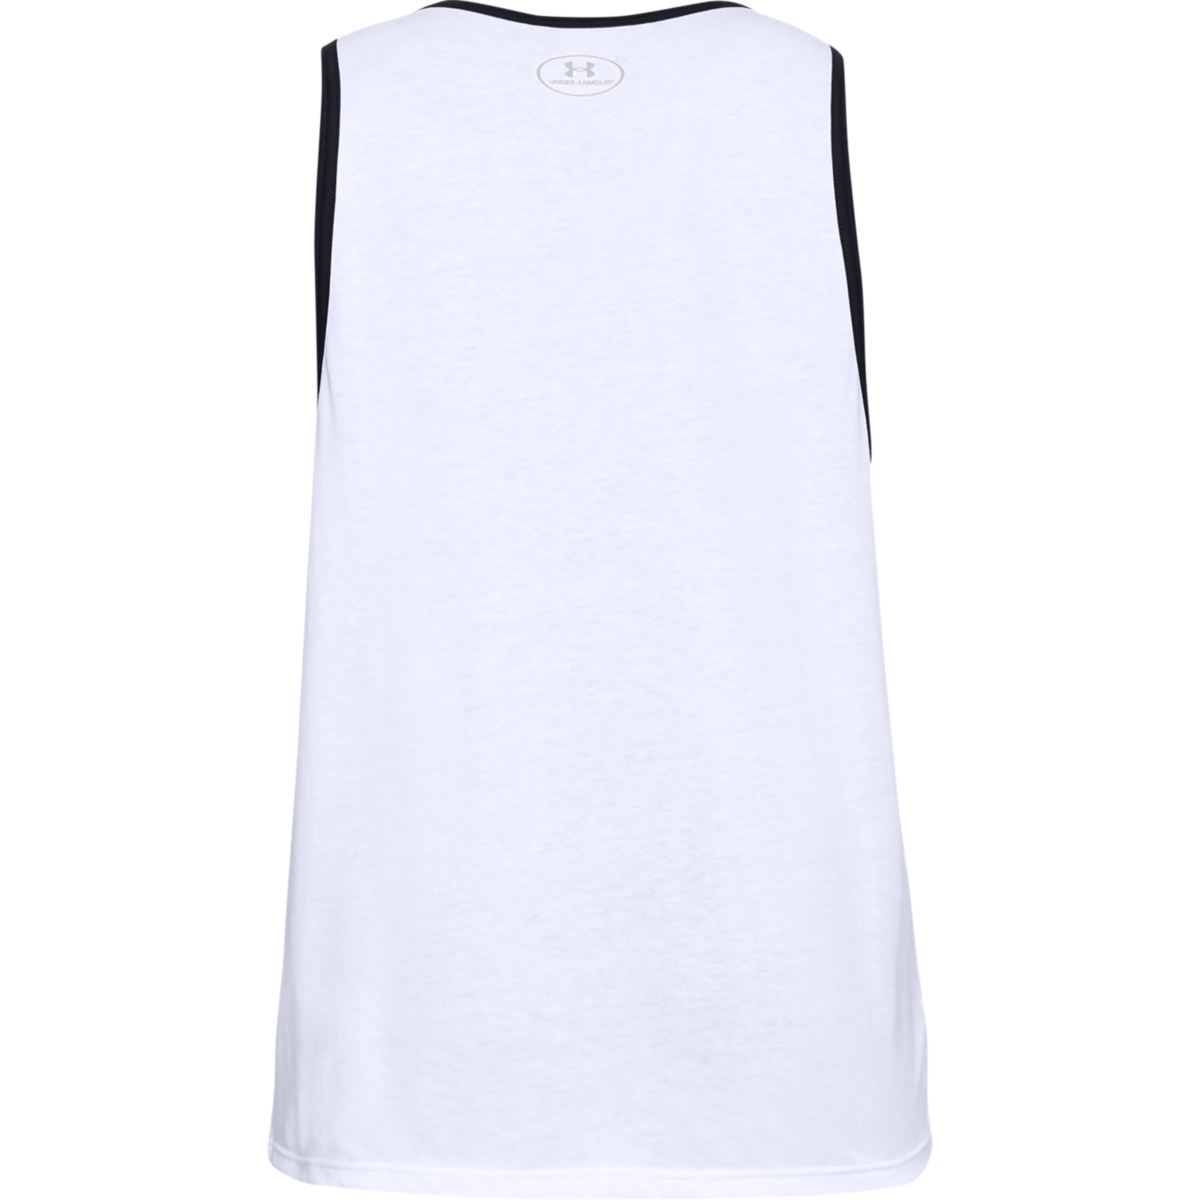 Under-Armour-Mens-UA-Sportstyle-Logo-Tank-Top-Sleeveless-Cotton-Vest thumbnail 9